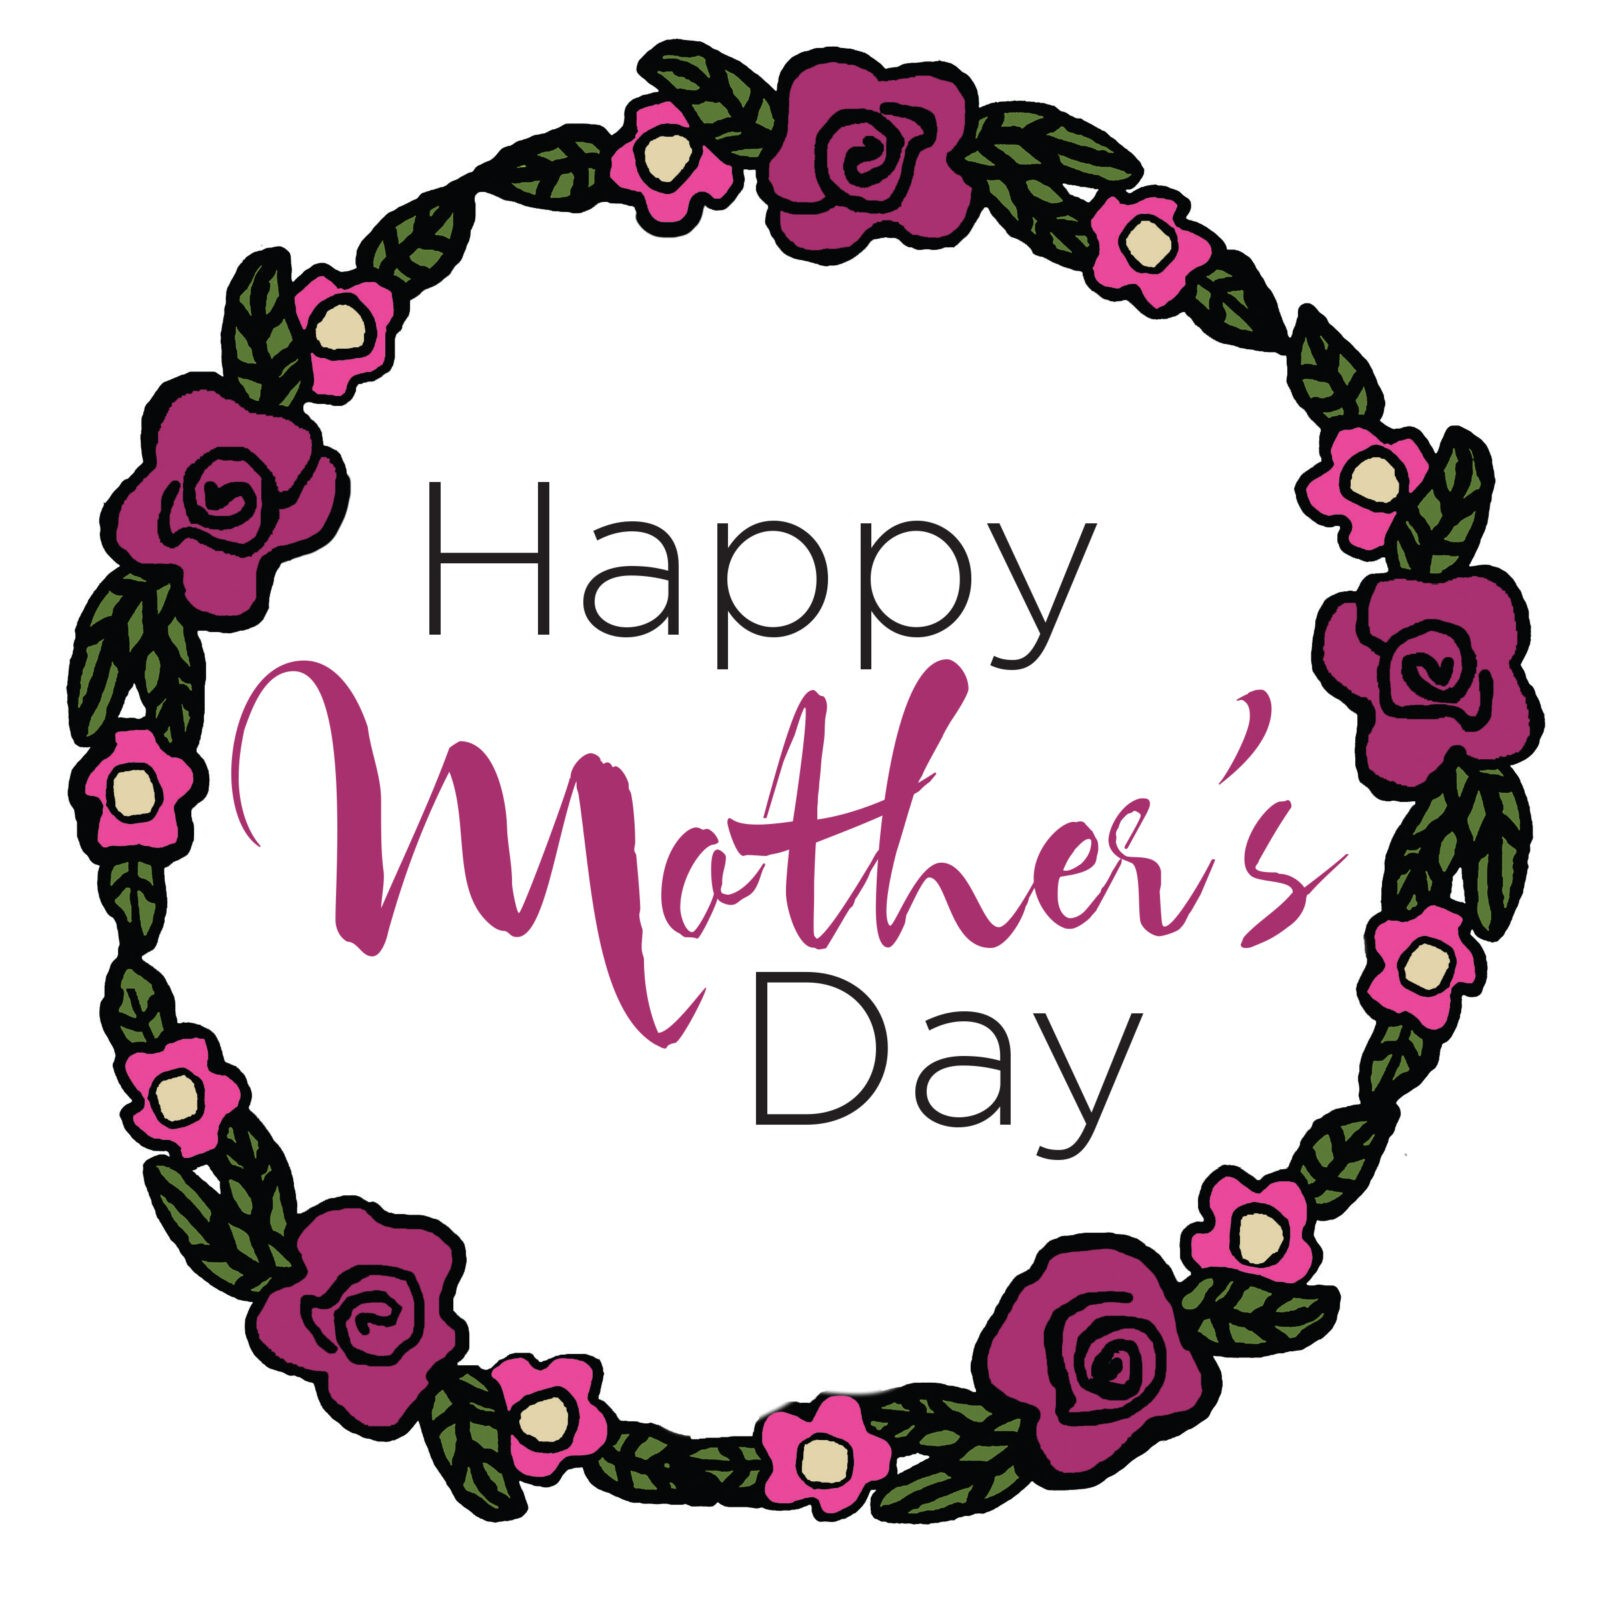 Happy Mother's Day Tile (Pink)